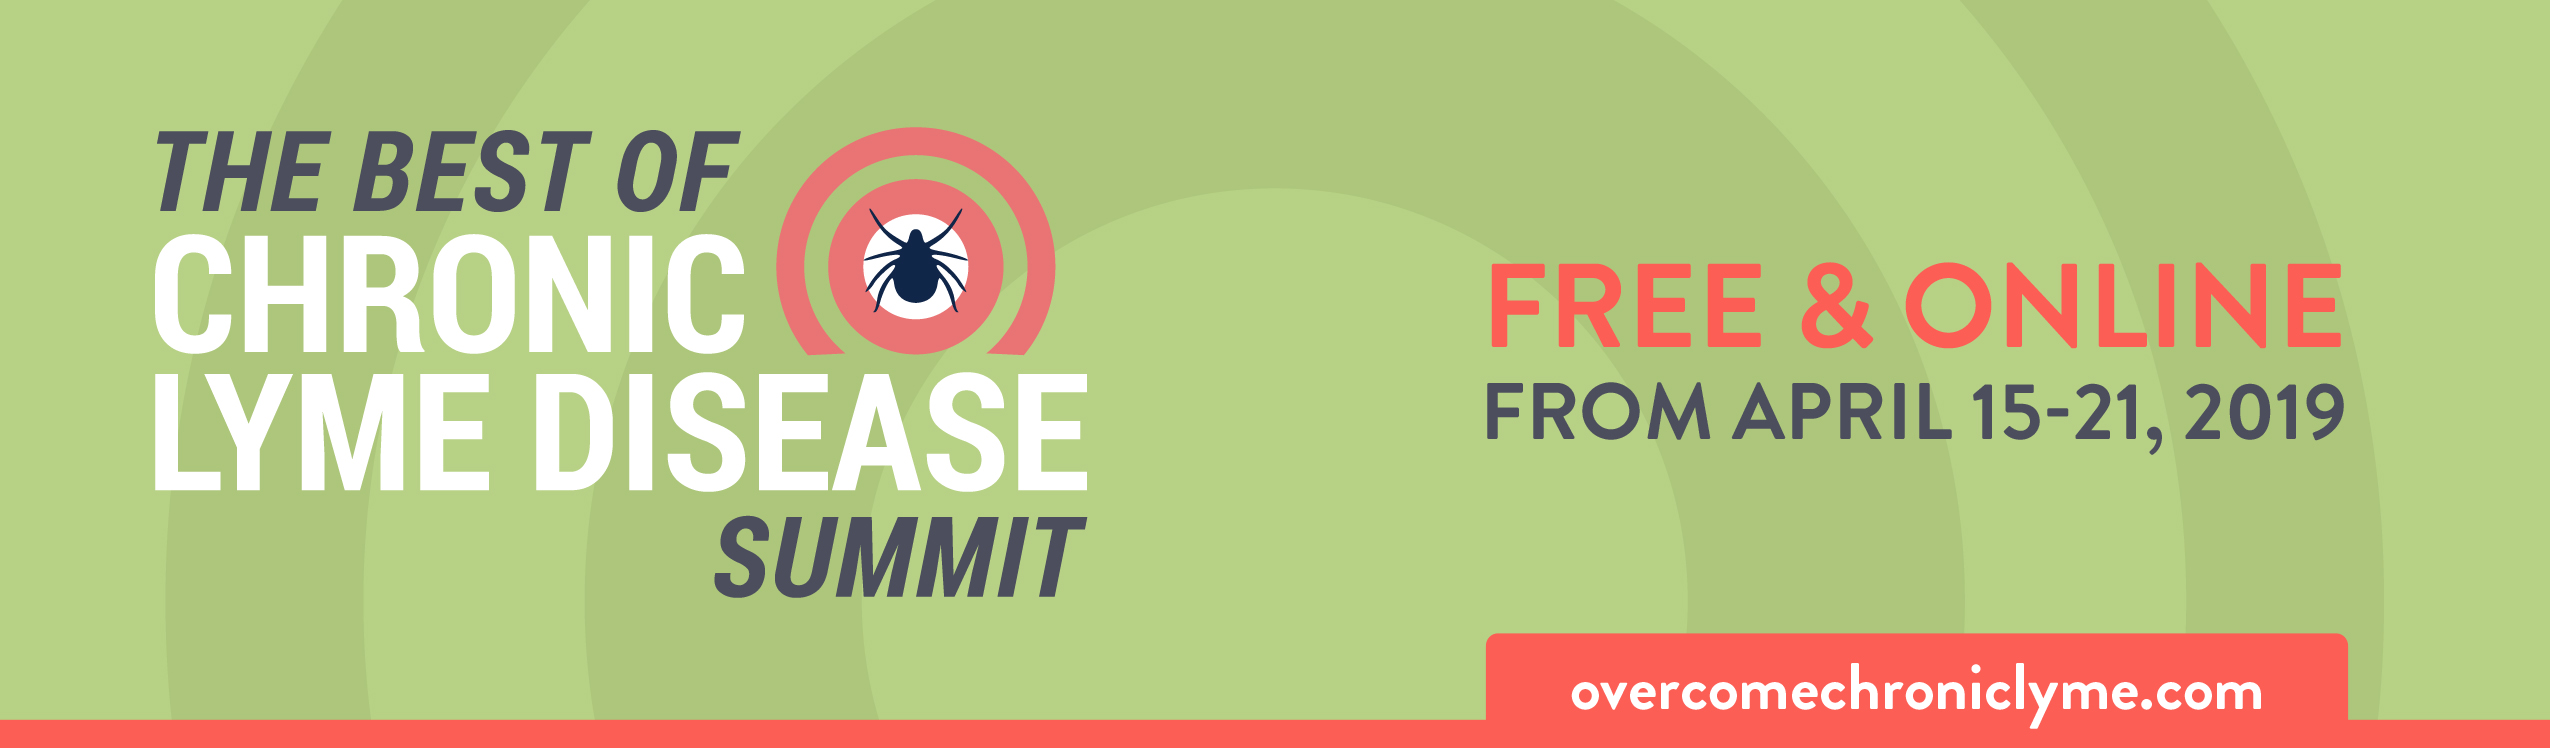 Best of Chronic Lyme Disease Summit